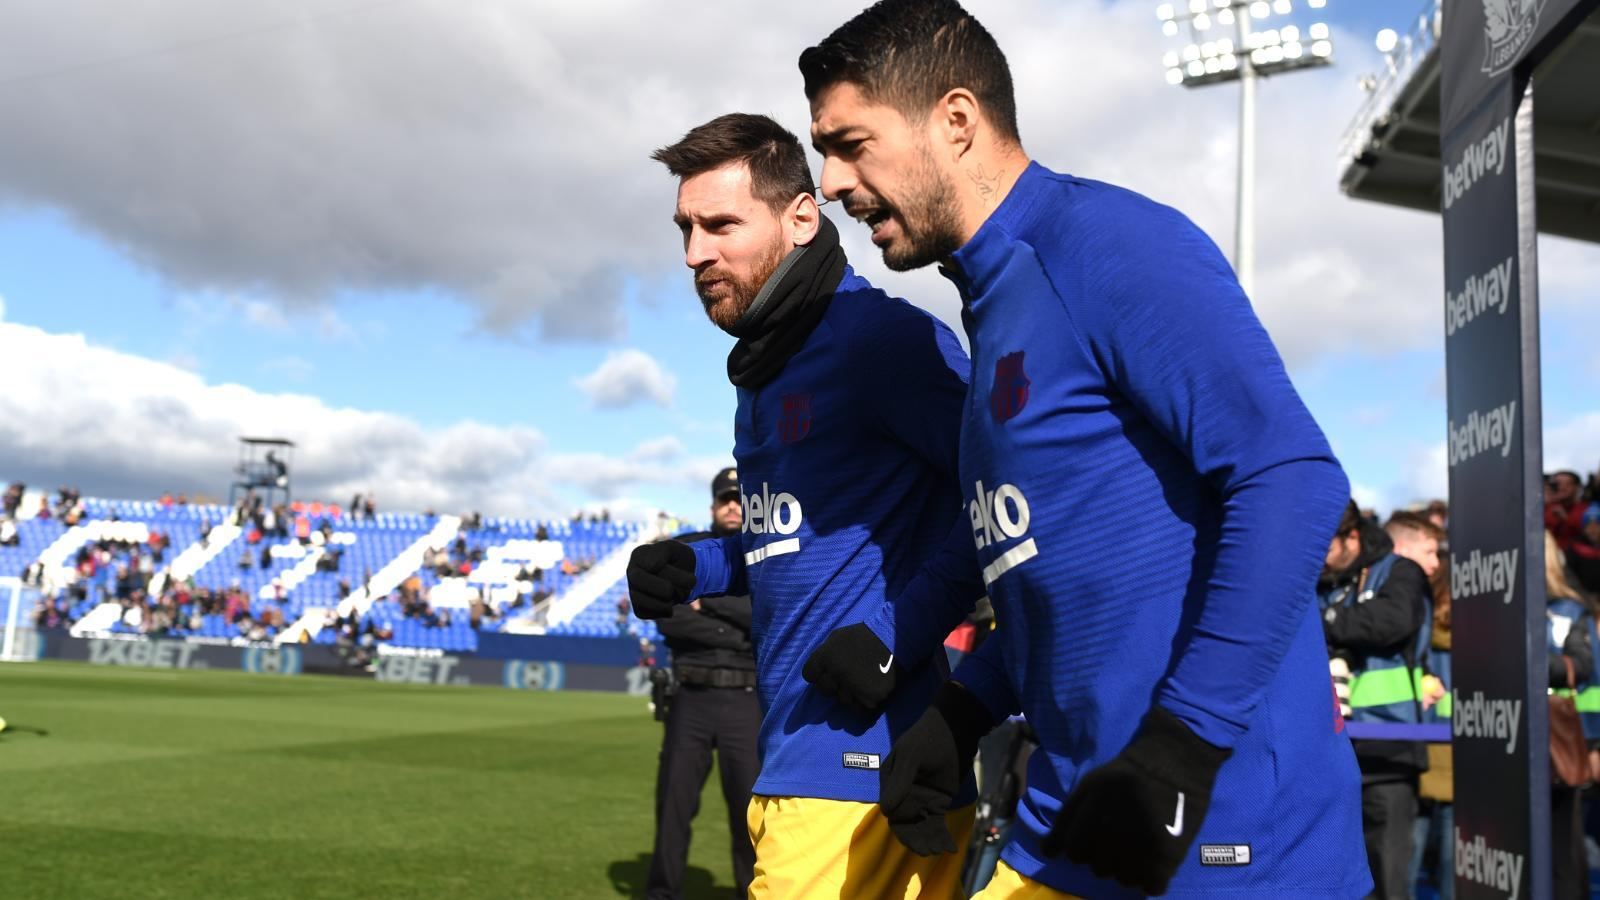 Barcelona - Suarez will face old friend Messi in a race for the title